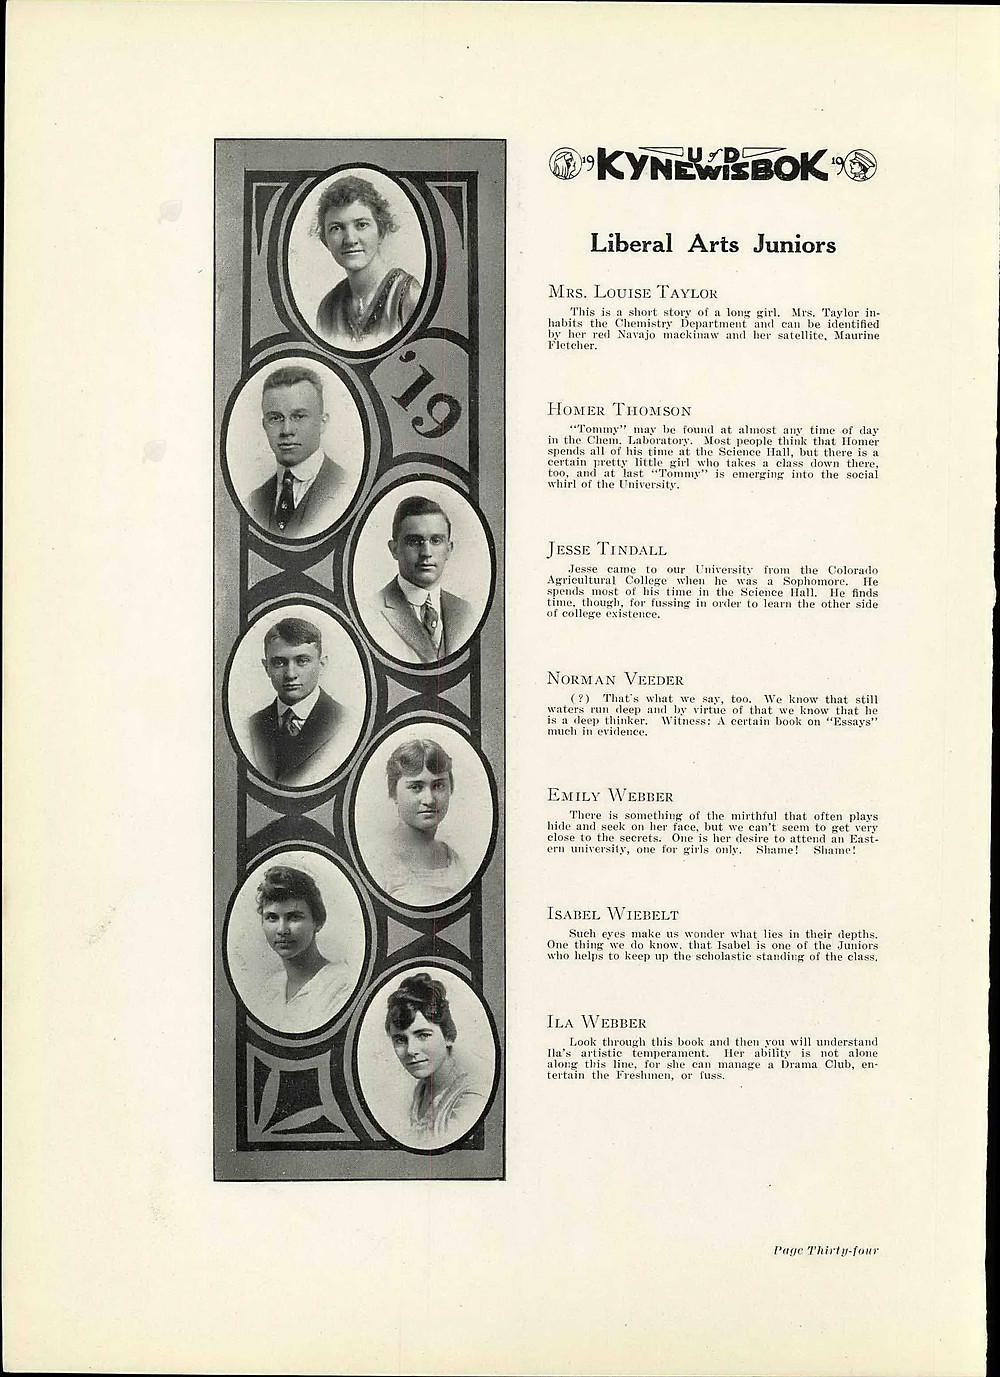 Page from the 1919 University of Denver yearbook featuring Jesse Tindall